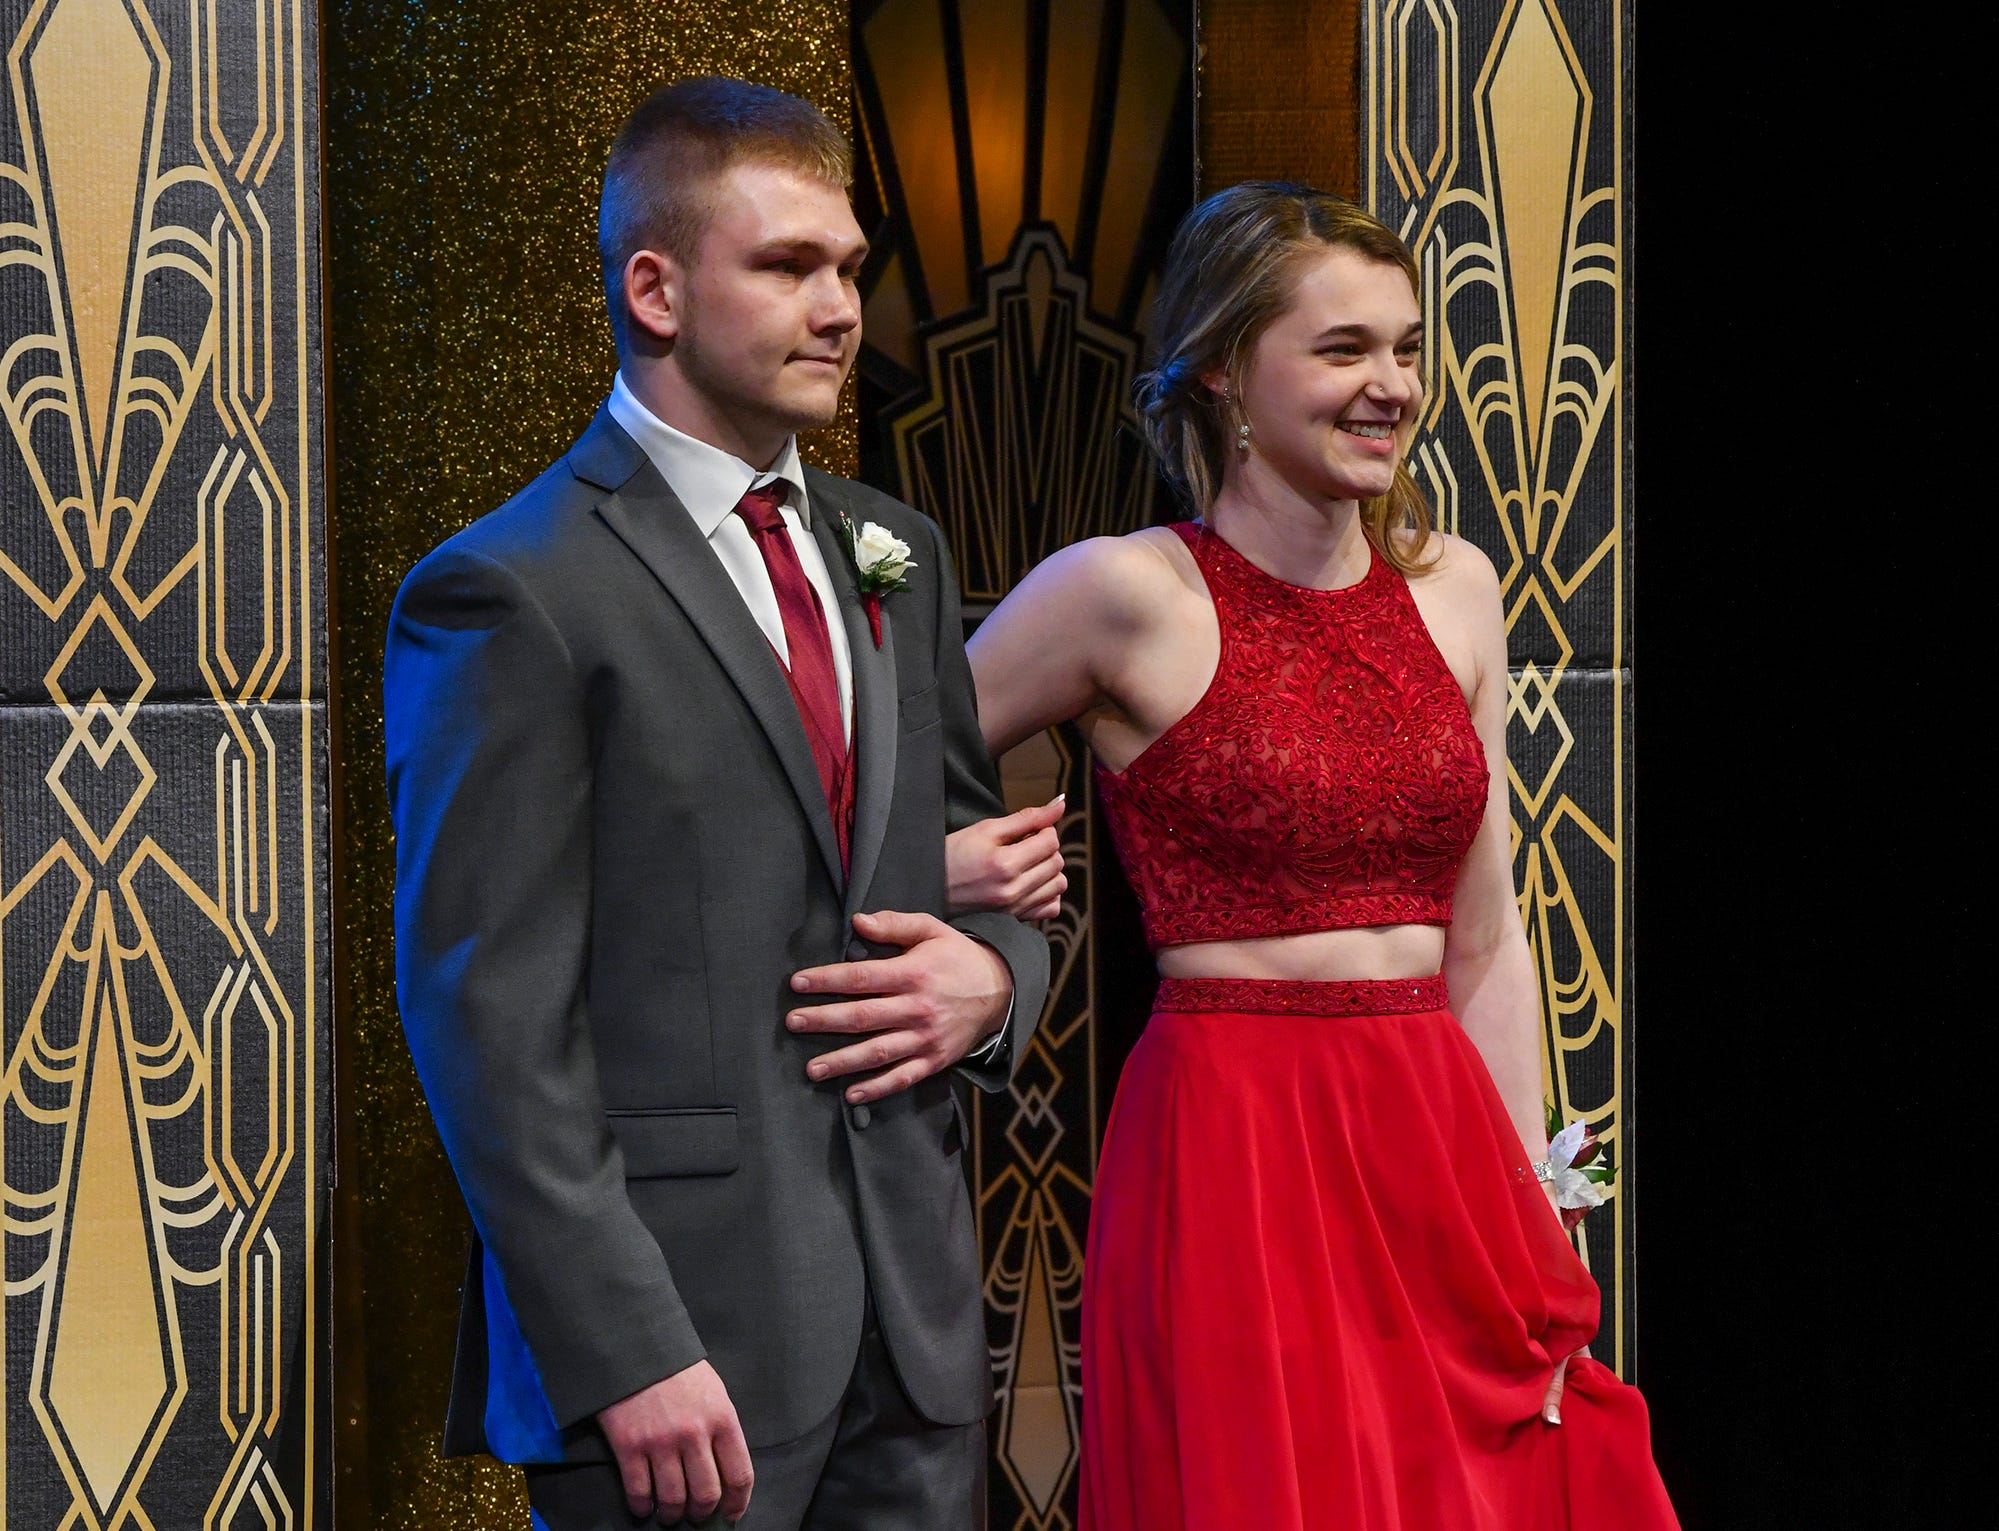 Paige Mead and Riley Rakotz take the stage during prom grand march Saturday, April 6, at Albany High School.